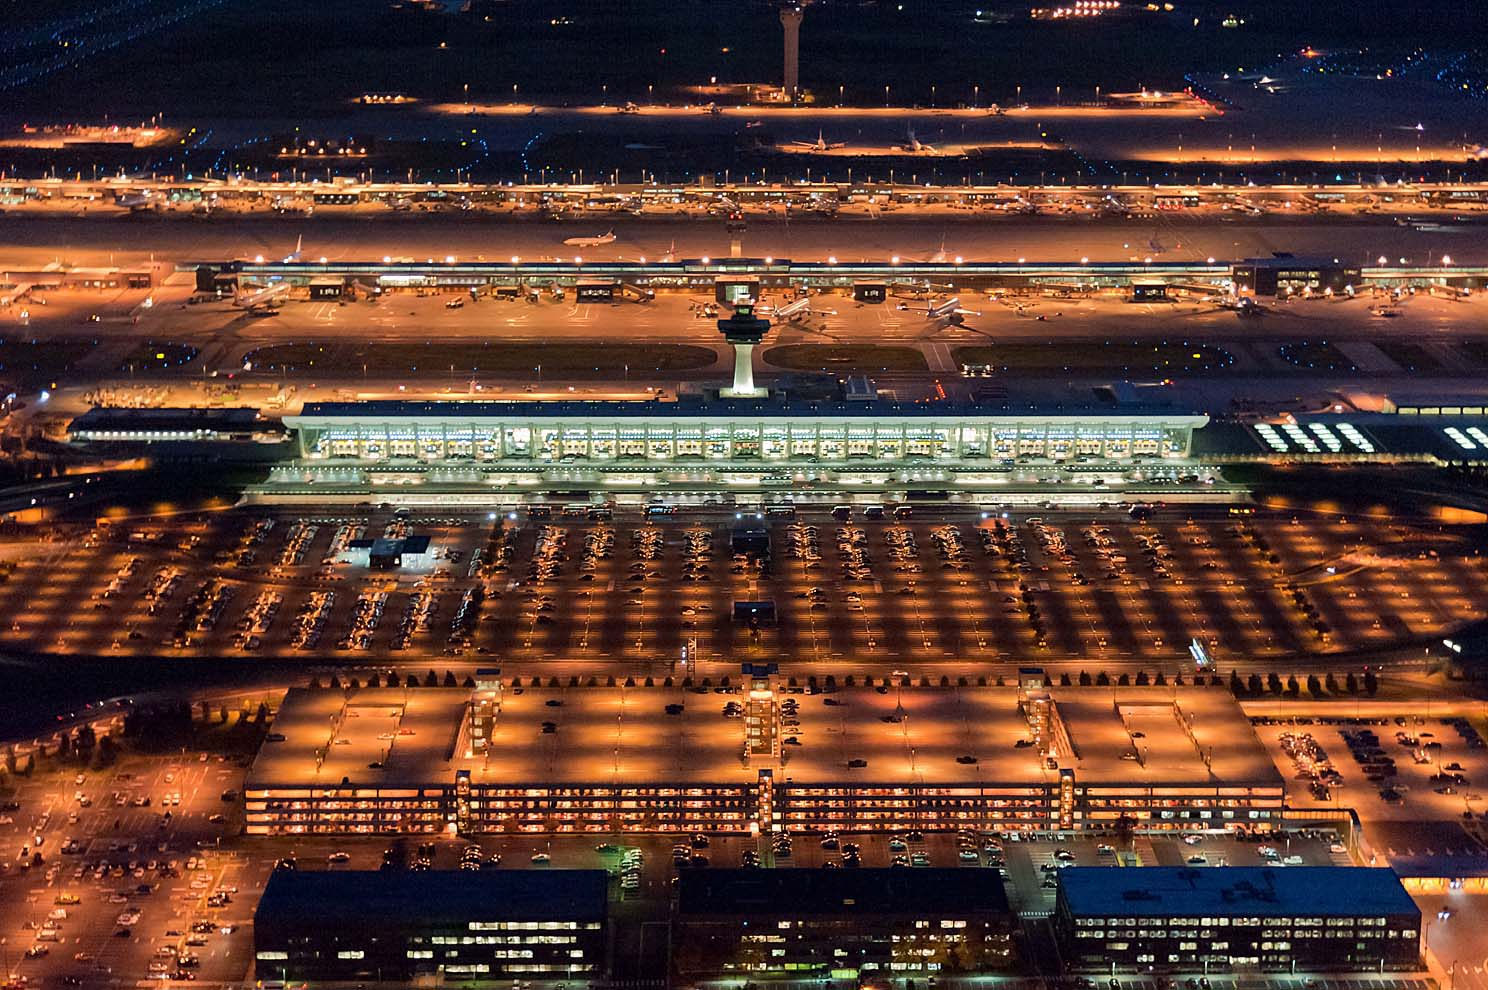 Dulles Airport twilight aerial